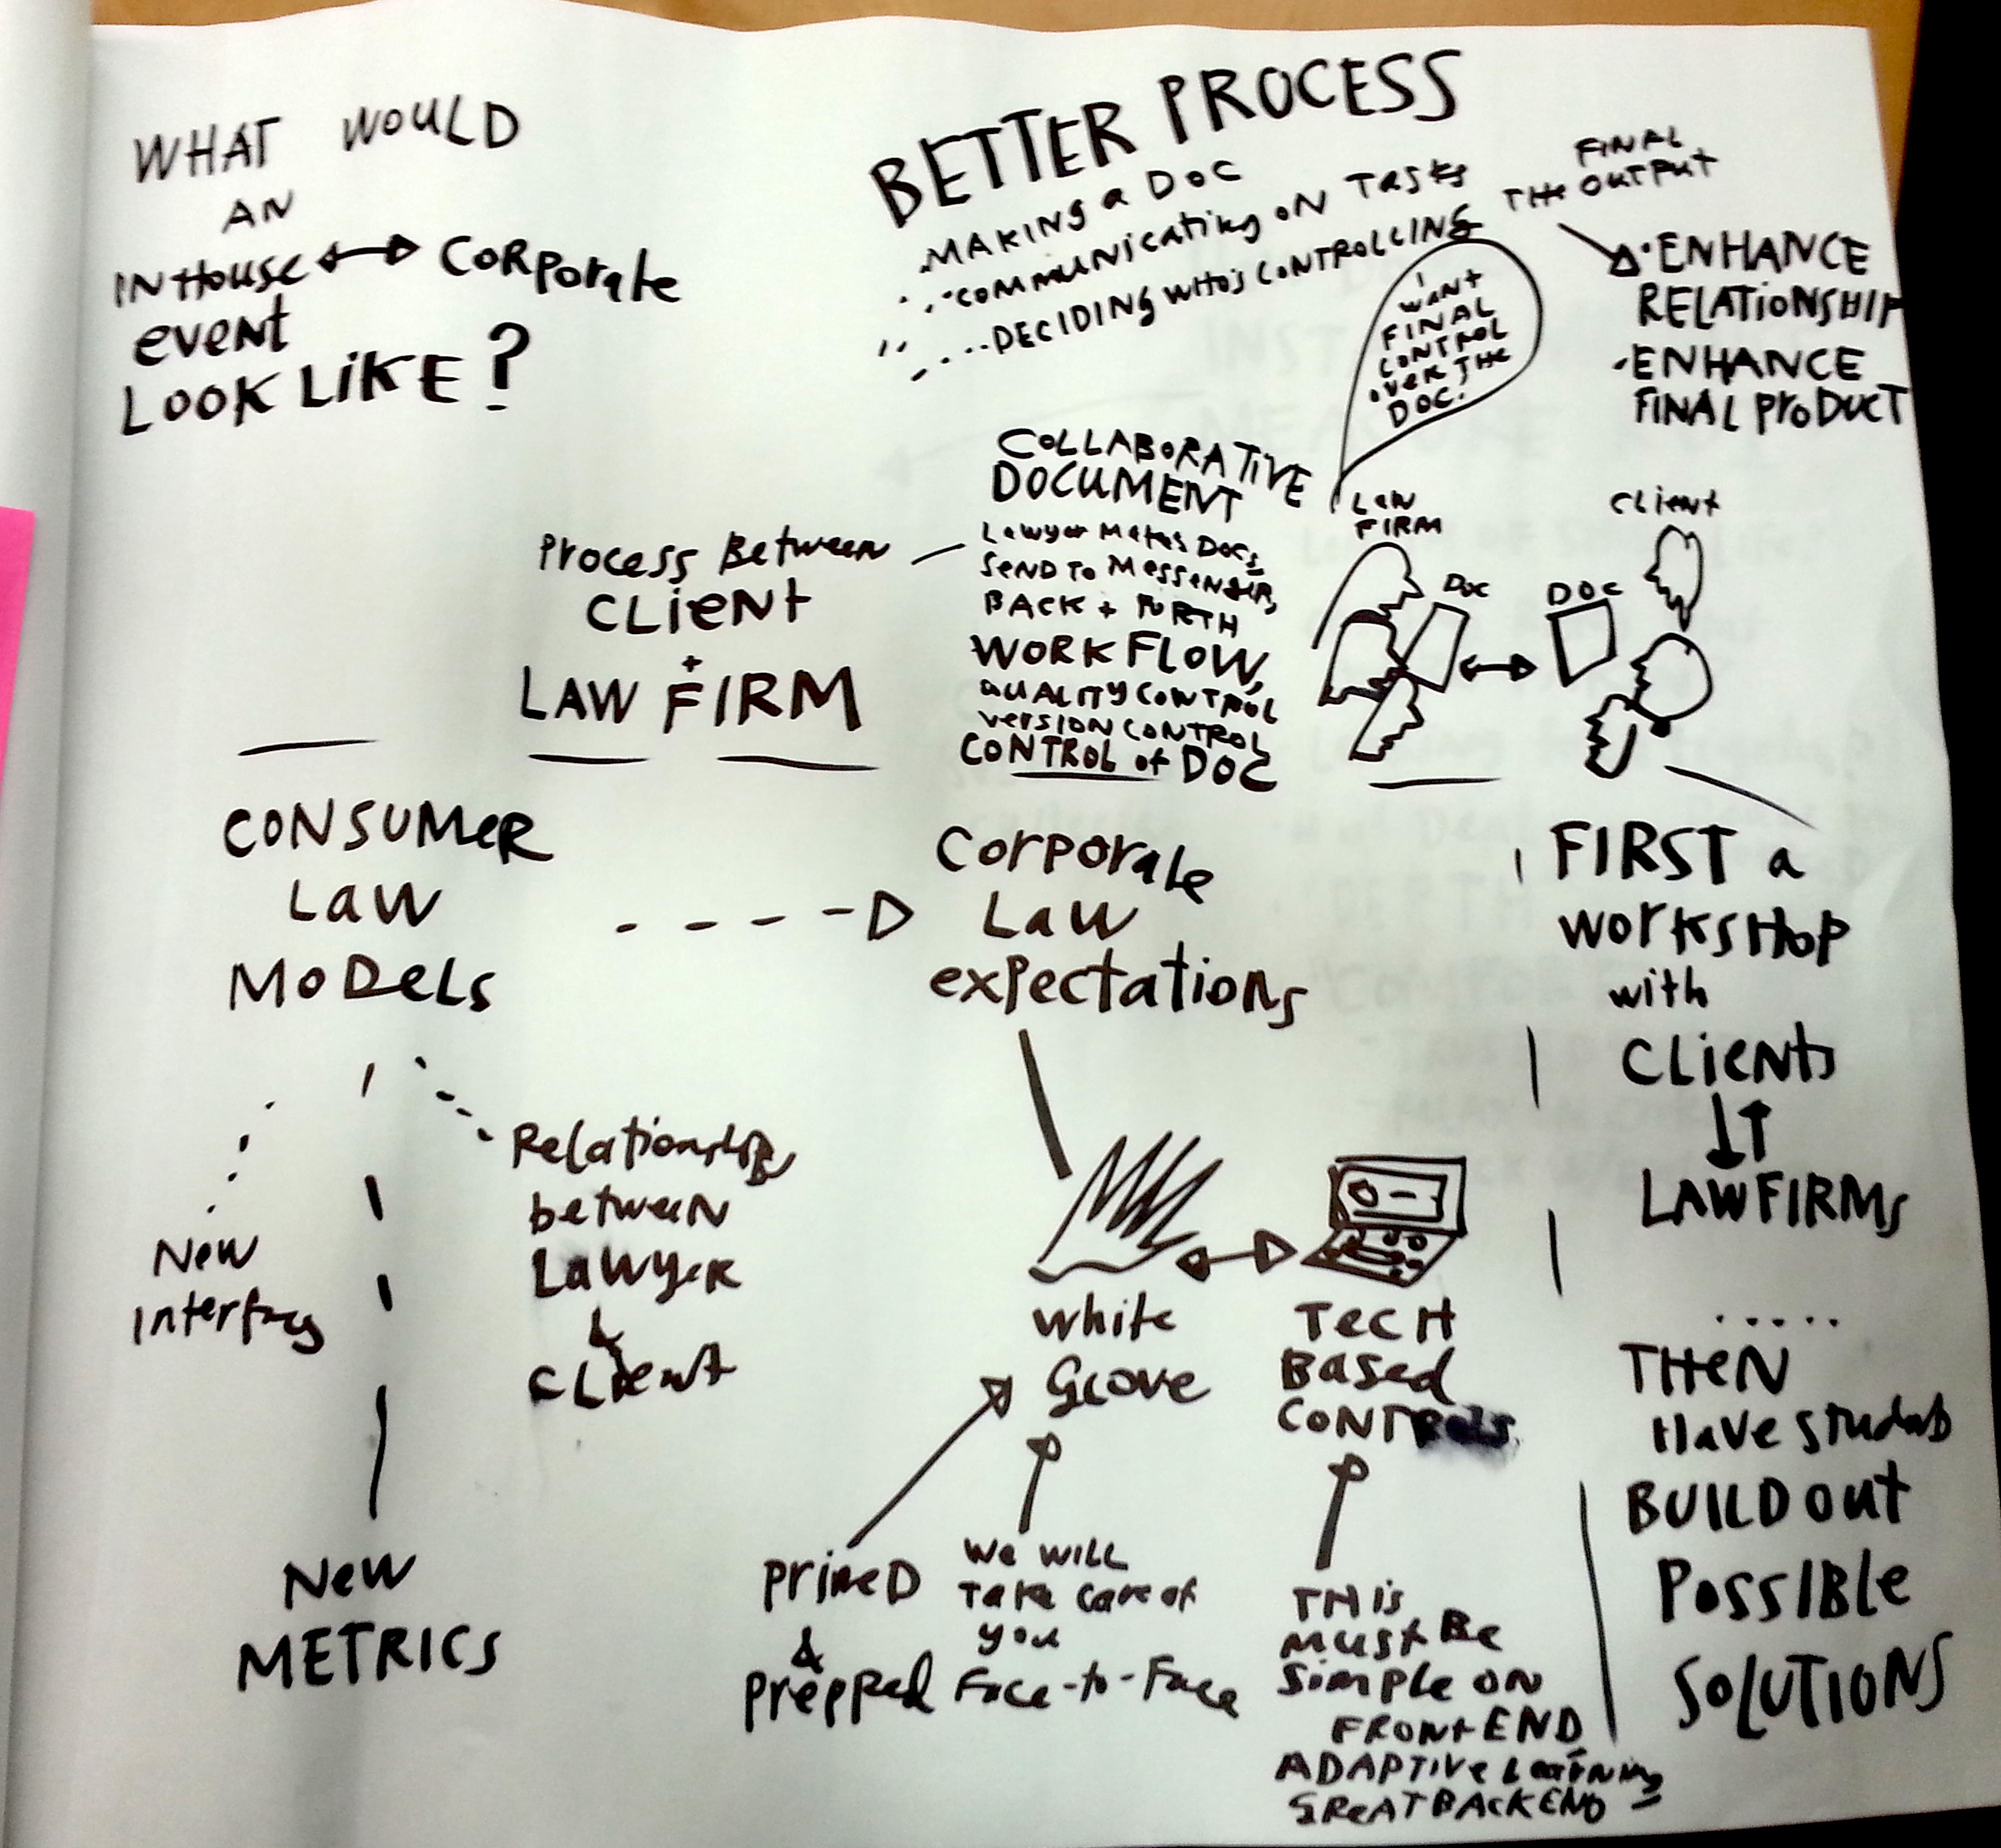 Legal Design notes - Margaret Hagan - whiteboard and paper sketches - 2013-12-09 19.13.27